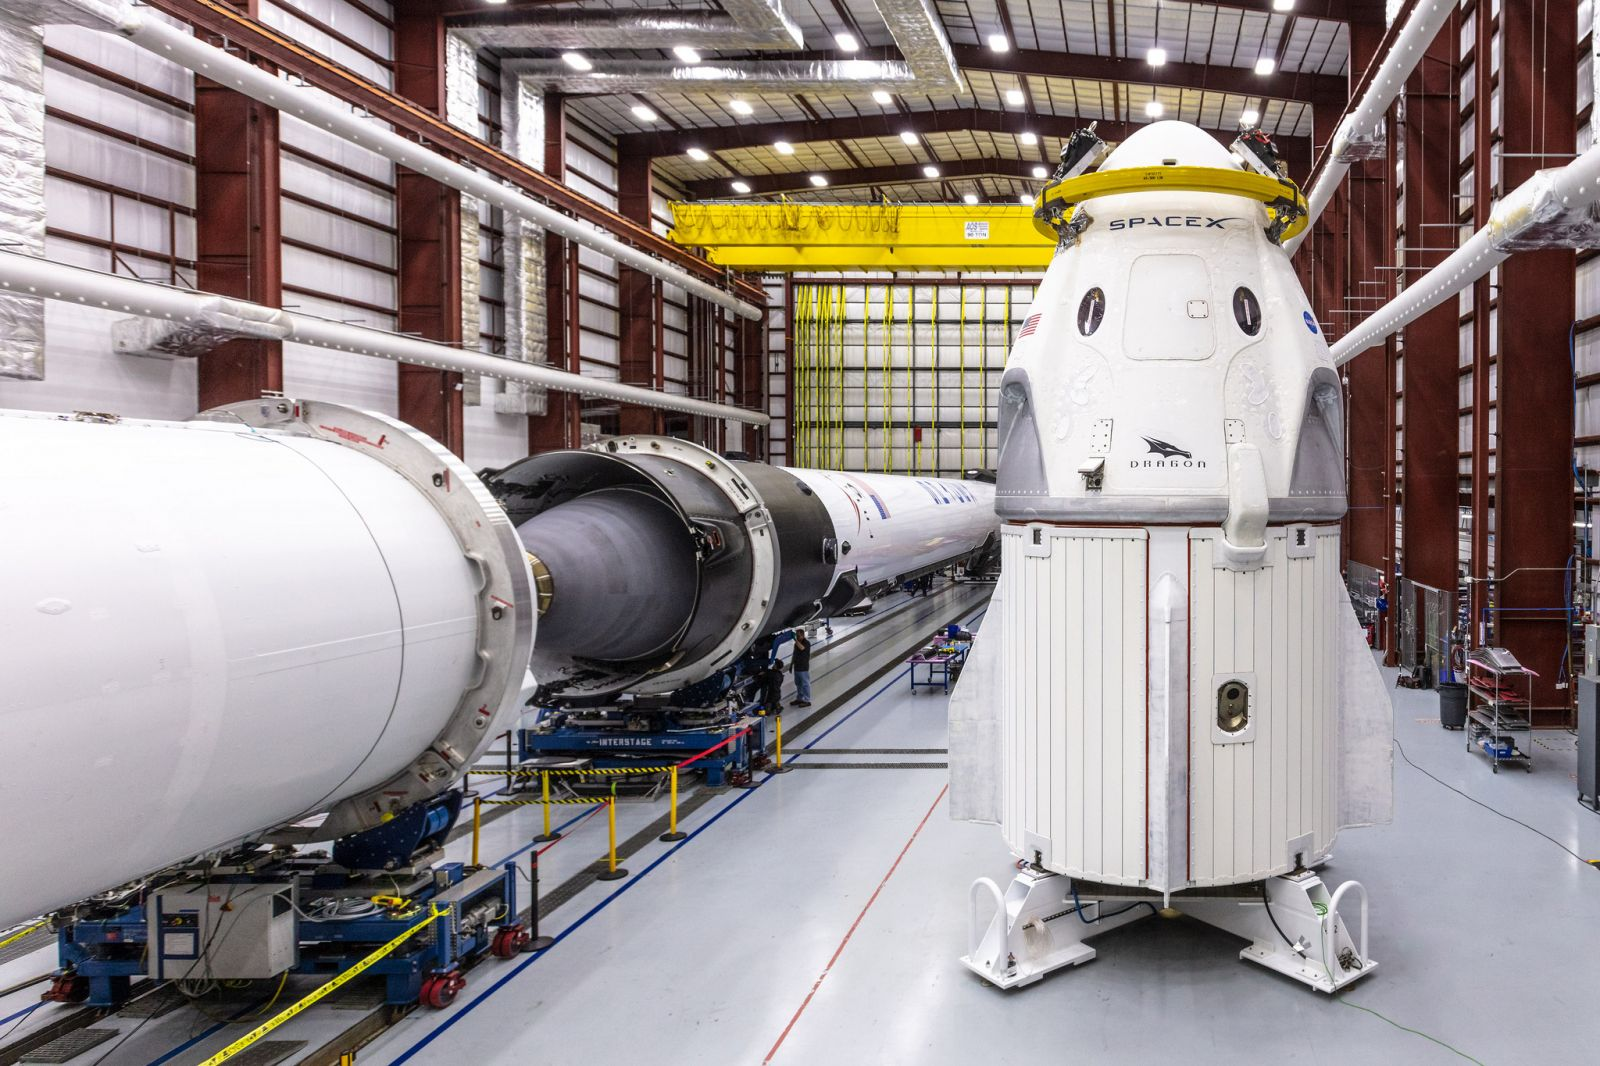 SpaceX's Crew Dragon to be used on the Demo-1 mission sits in the company's hangar at Launch Complex 39A. Photo Credit: SpaceX